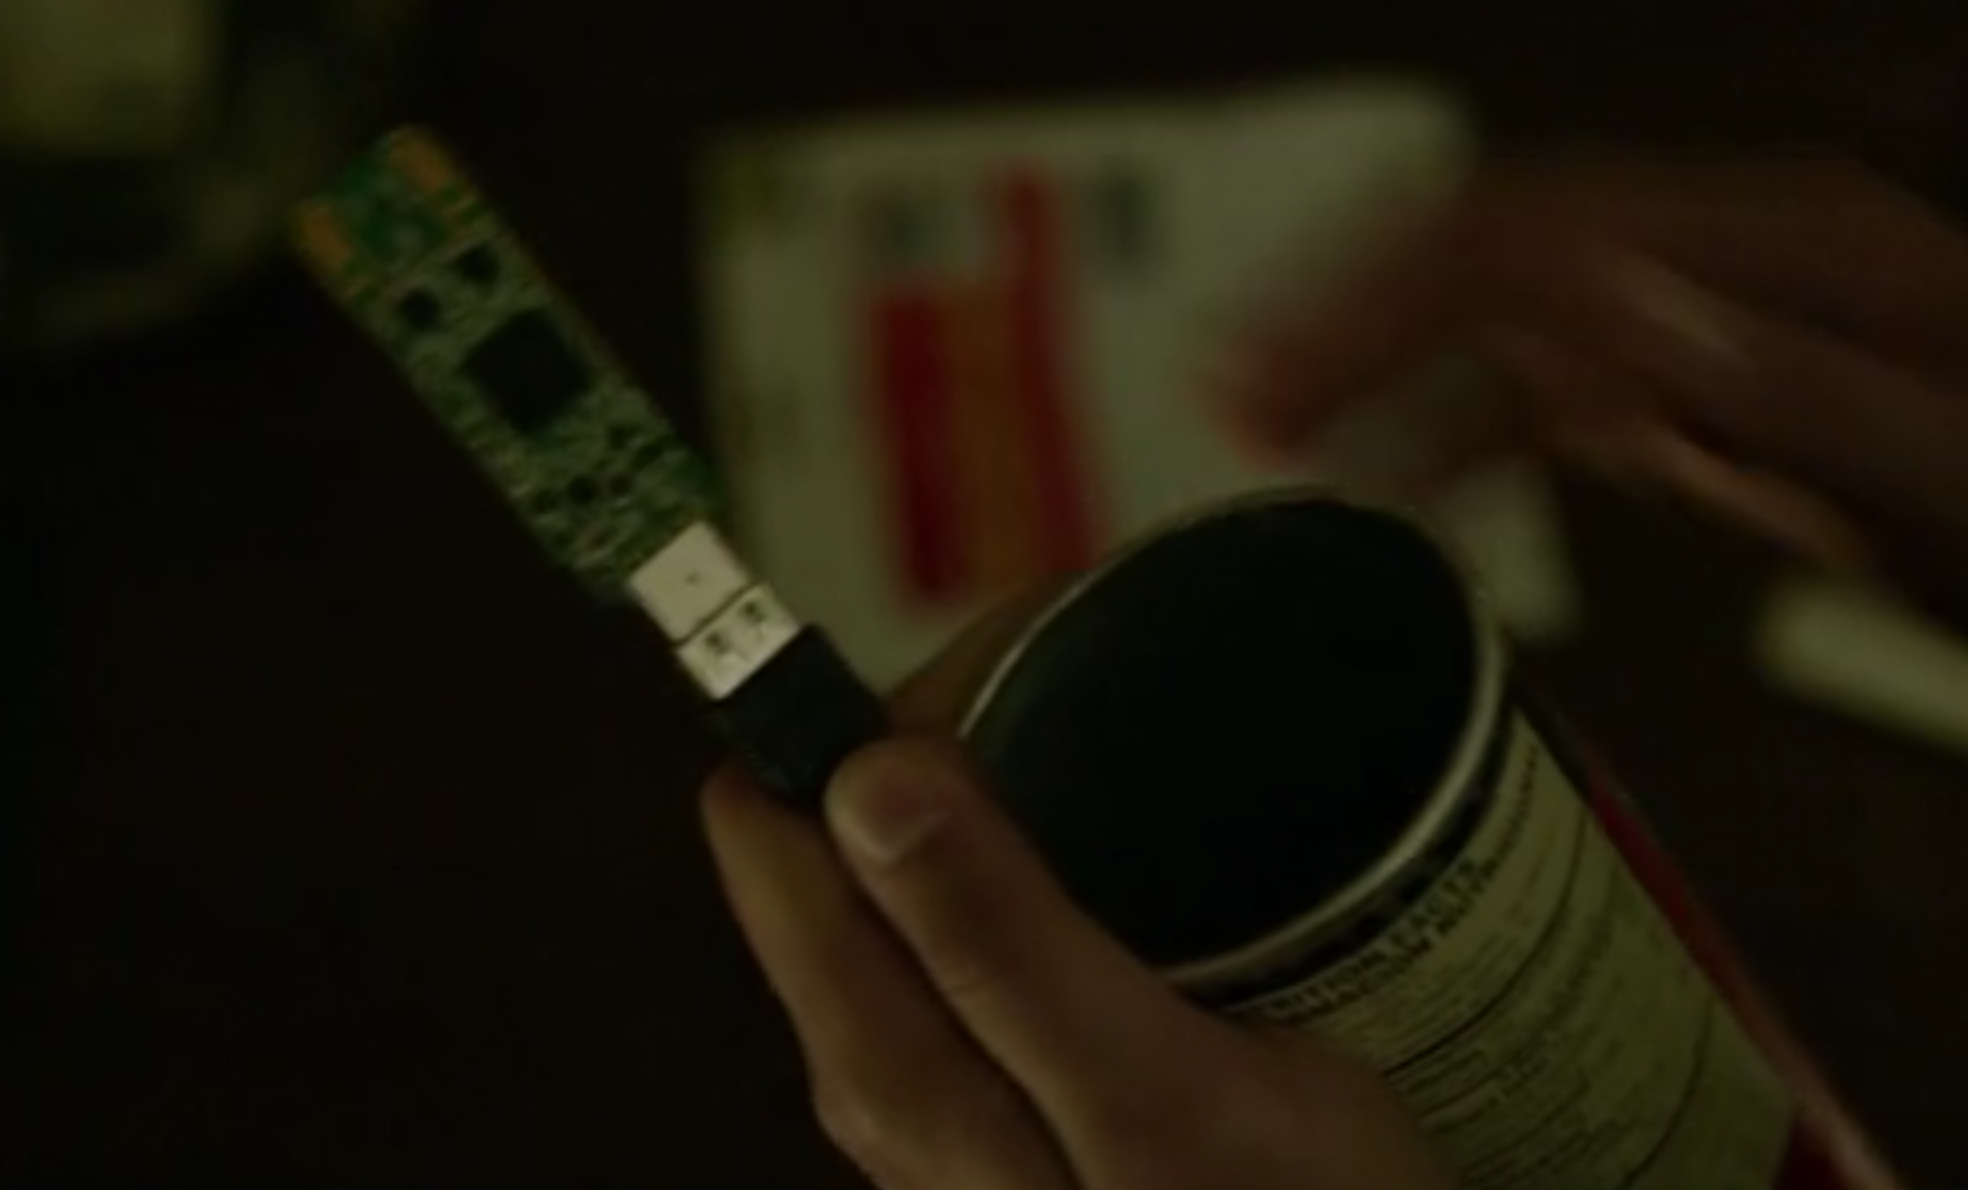 Mr  Robot' Rewind: An exciting Episode 10 features social